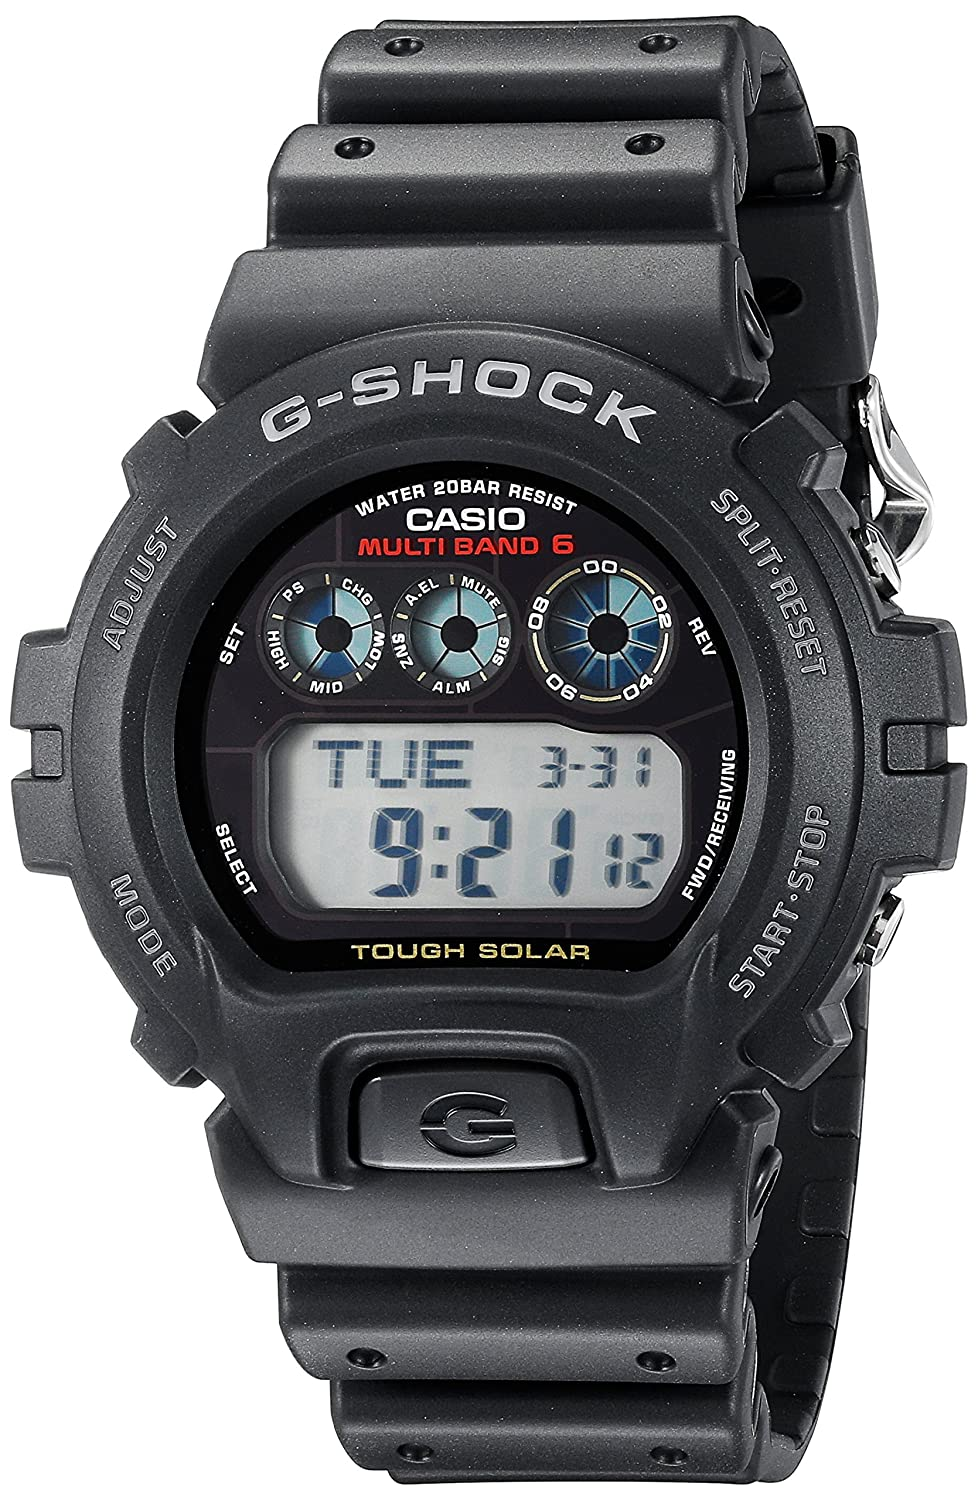 Casio Caballero G-Shock GW6900-1 Black Resin Quartz Reloj with Black Dial: Casio: Amazon.es: Relojes